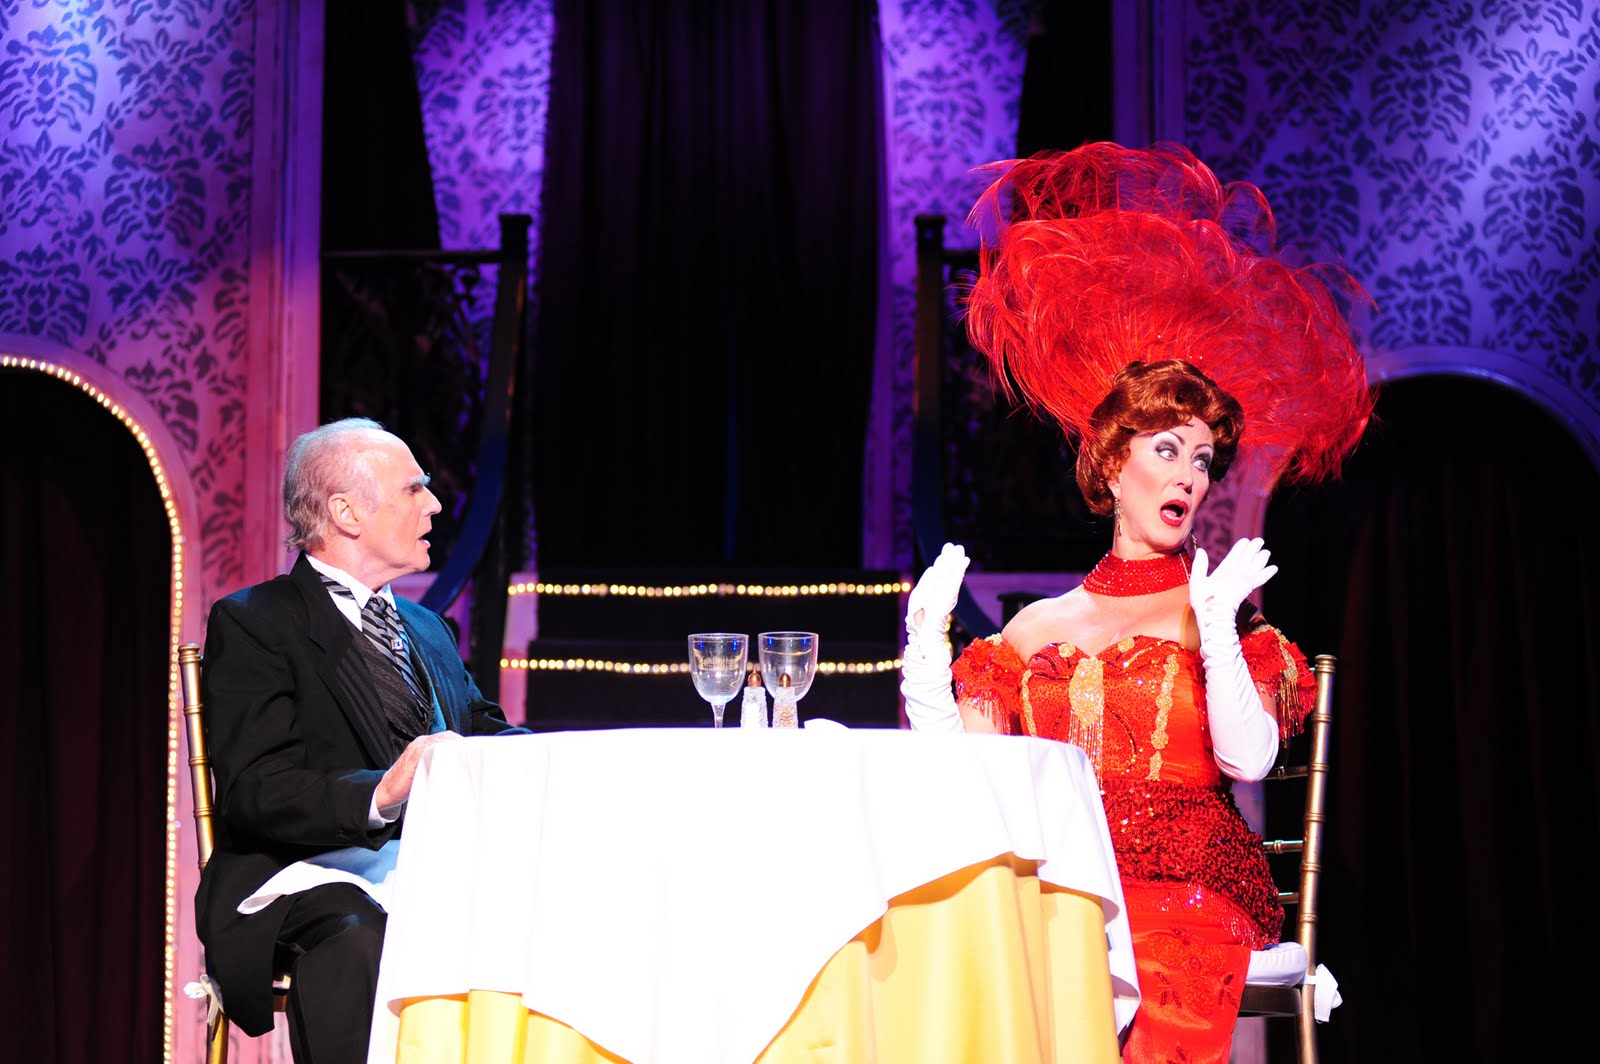 critique of hello dolly by michael stewart Book by michael stewart, music and lyrics by jerry herman  reviewed by eric  bird, associate critic for john garcia's the column  hello, dolly is based on  the play the merchant of yonkers, written by thornton wilder.